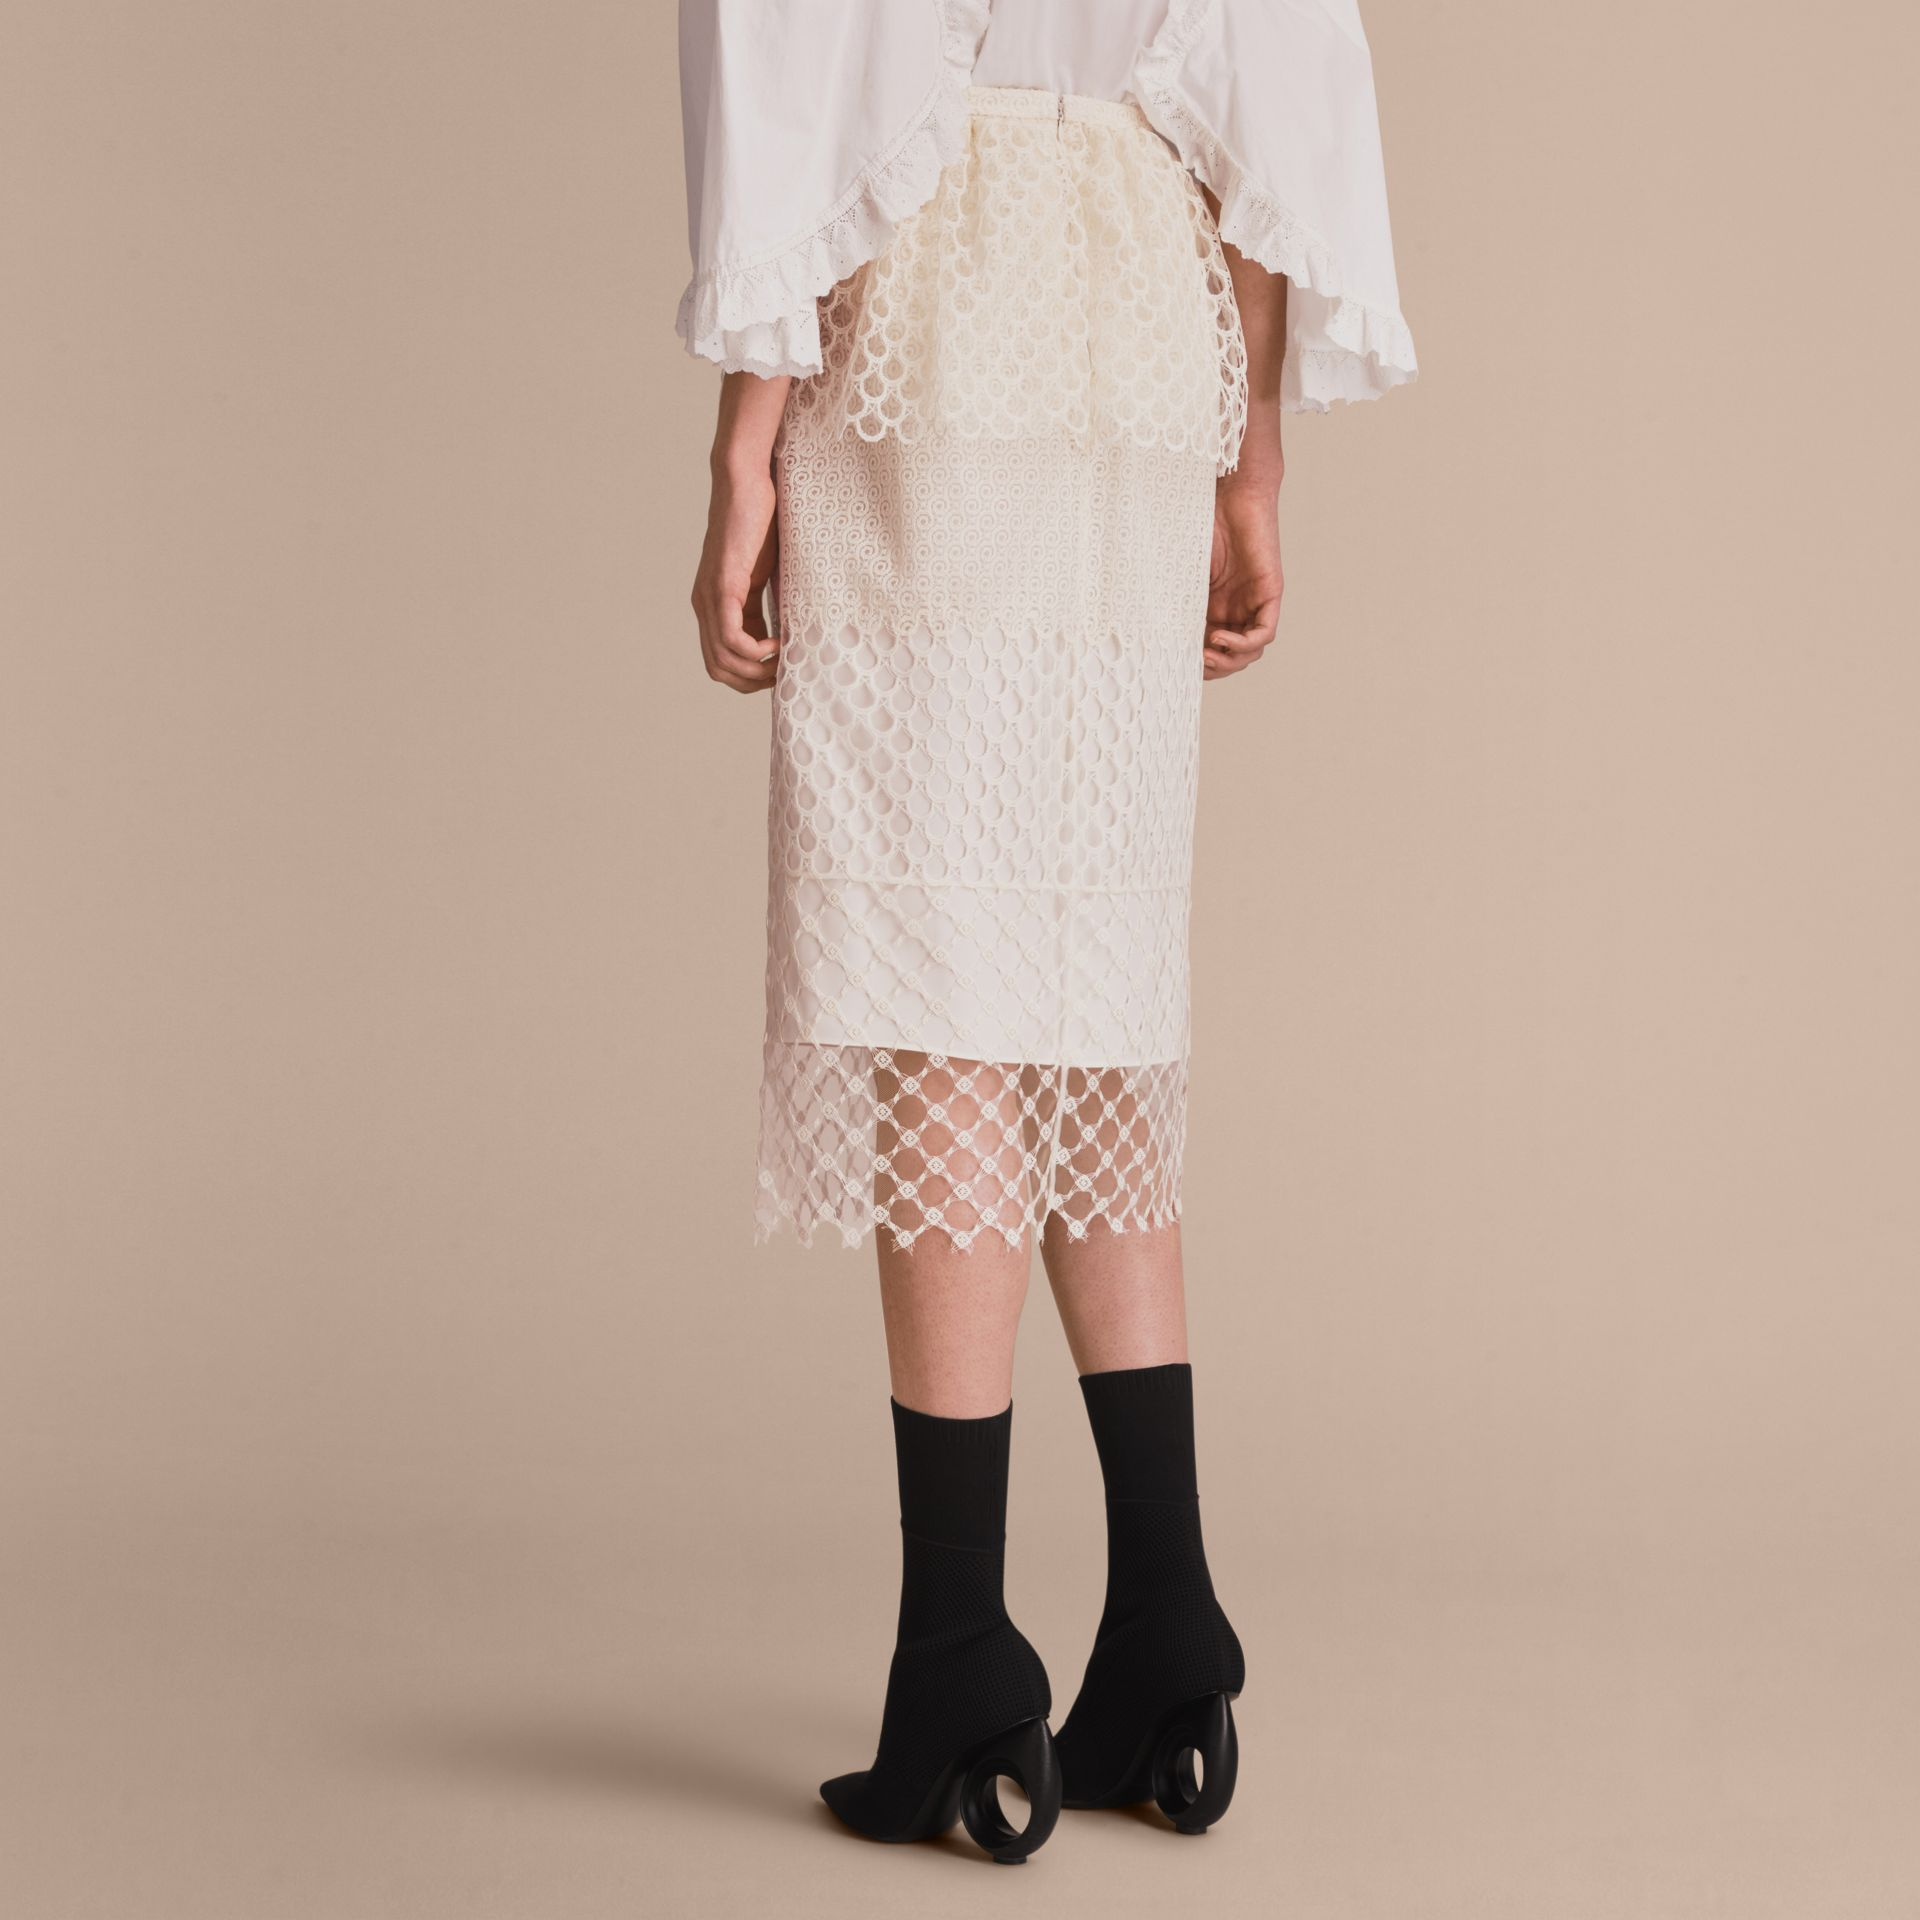 Macramé Lace Peplum Skirt in Natural White - Women | Burberry - gallery image 3